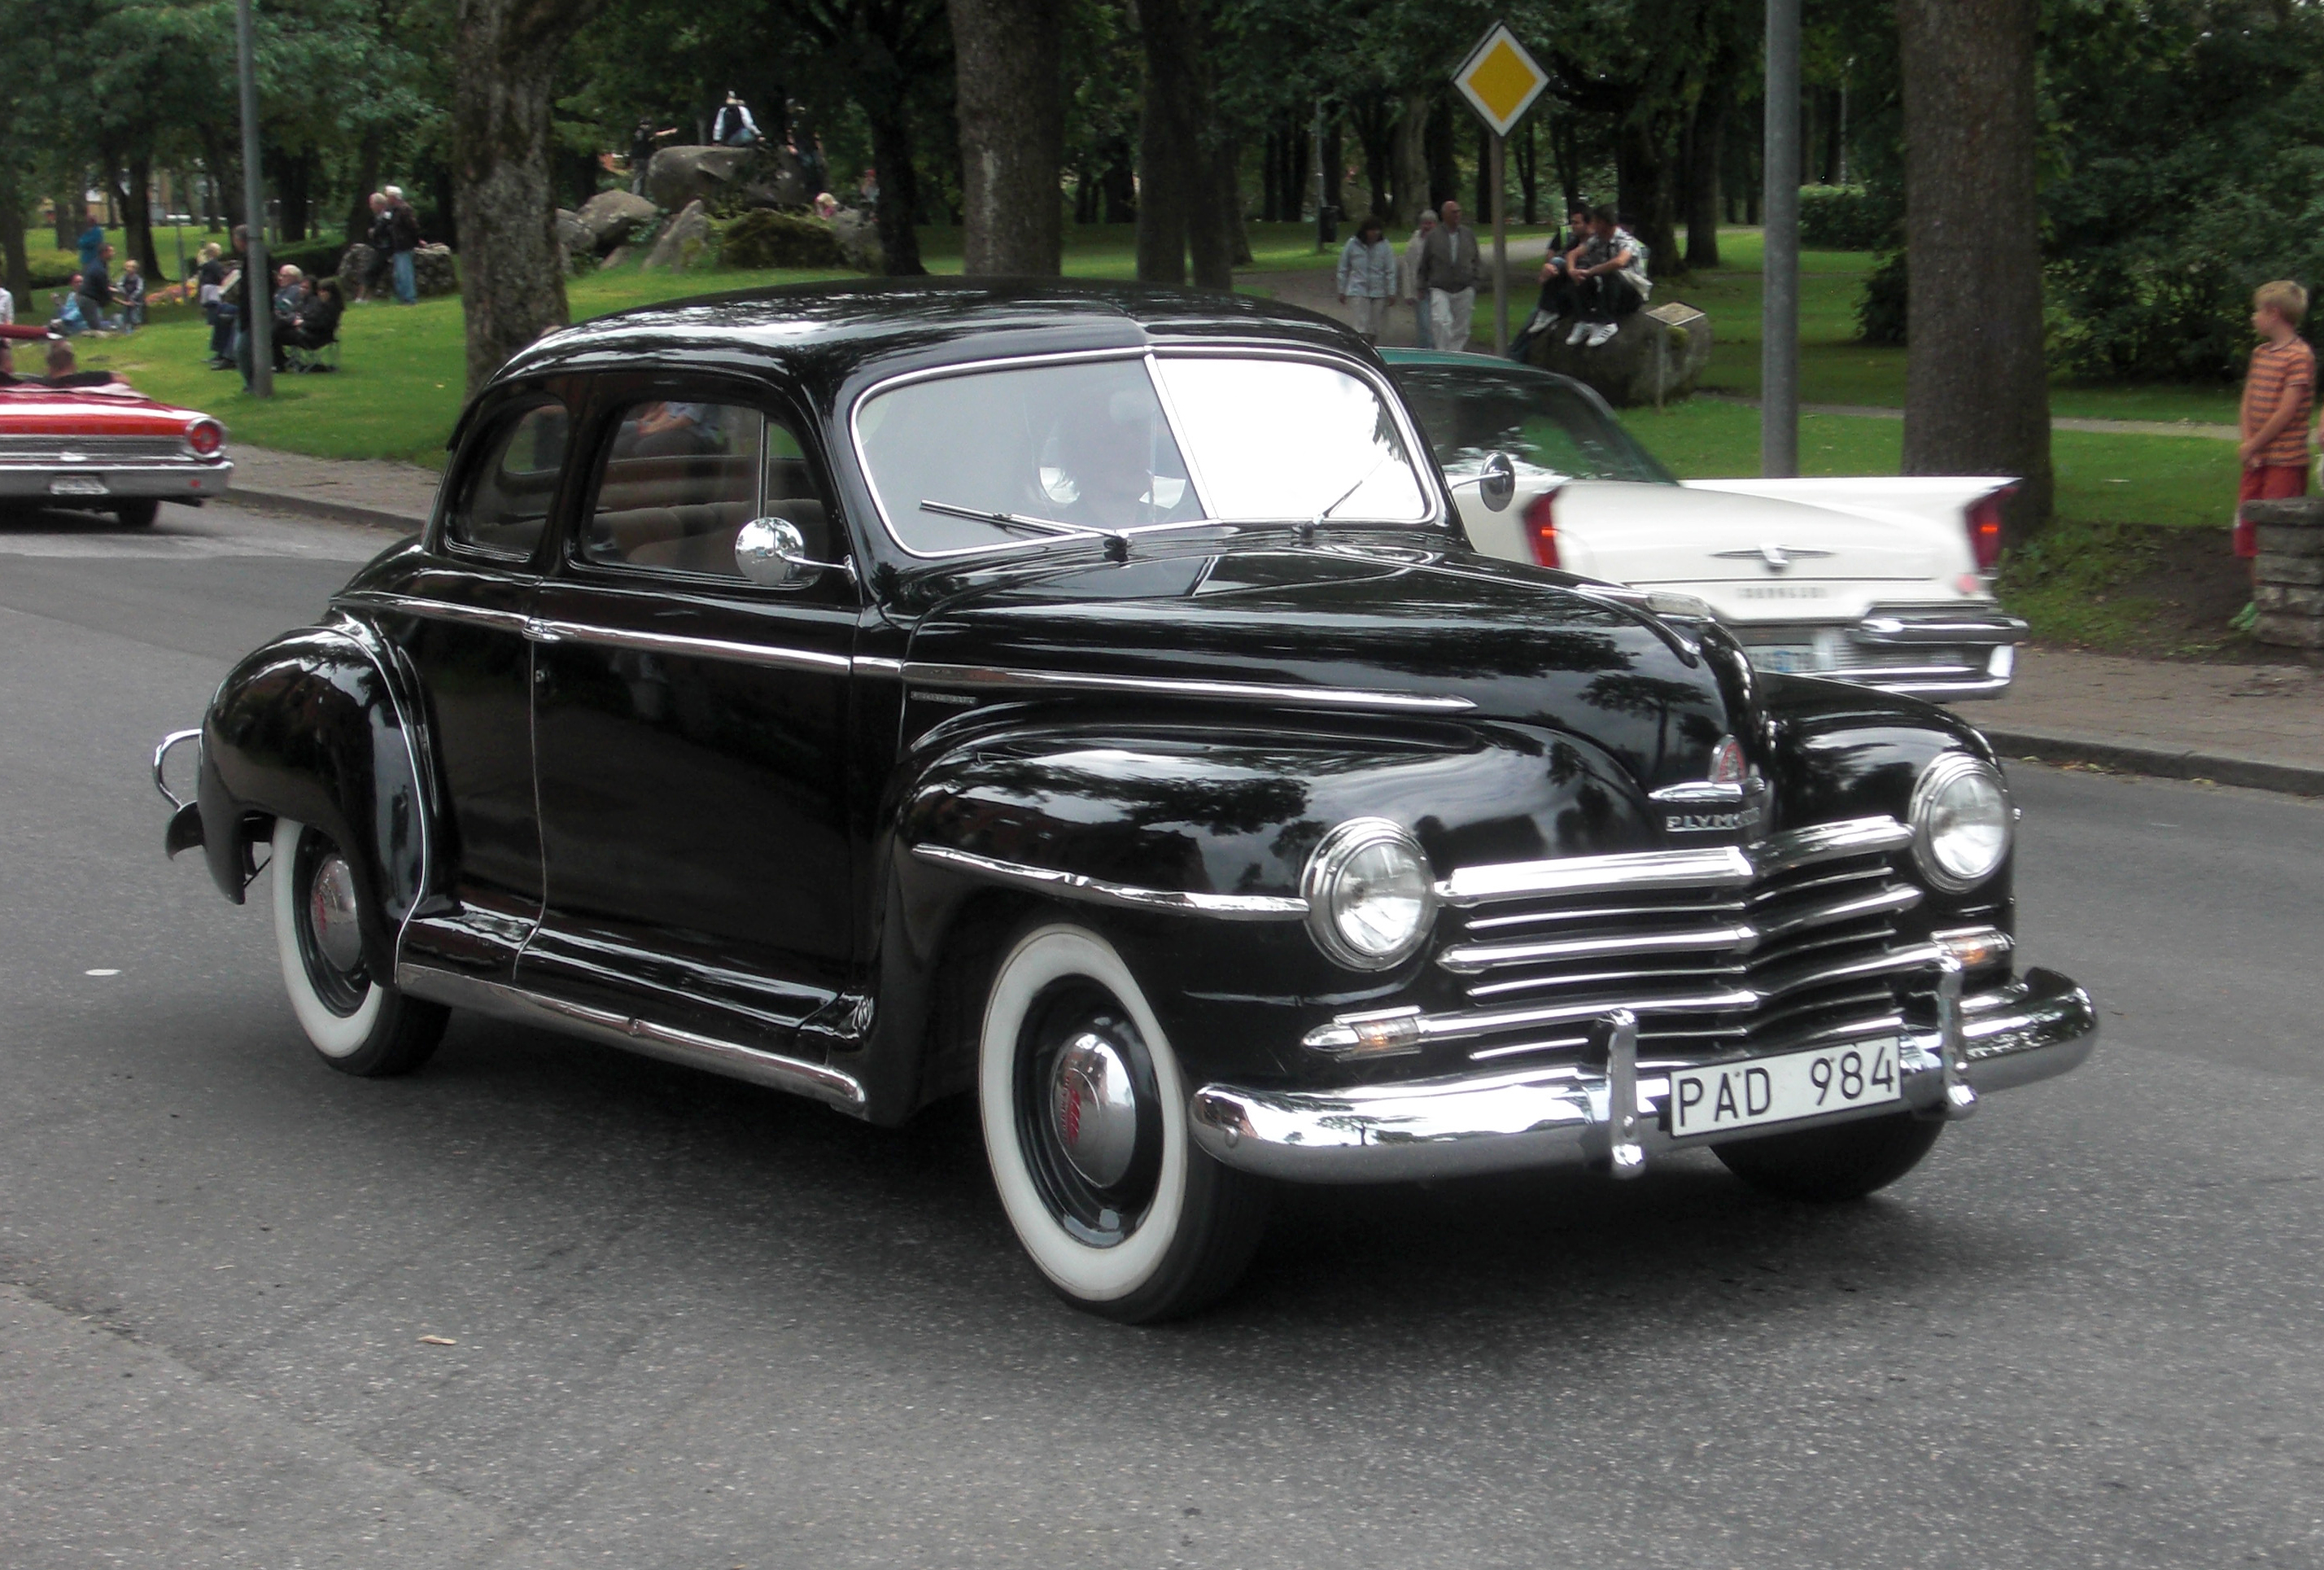 File:Plymouth Special De Luxe 1947 - Falköping cruising 2010 - 7045.jpg - Wikimedia Commons